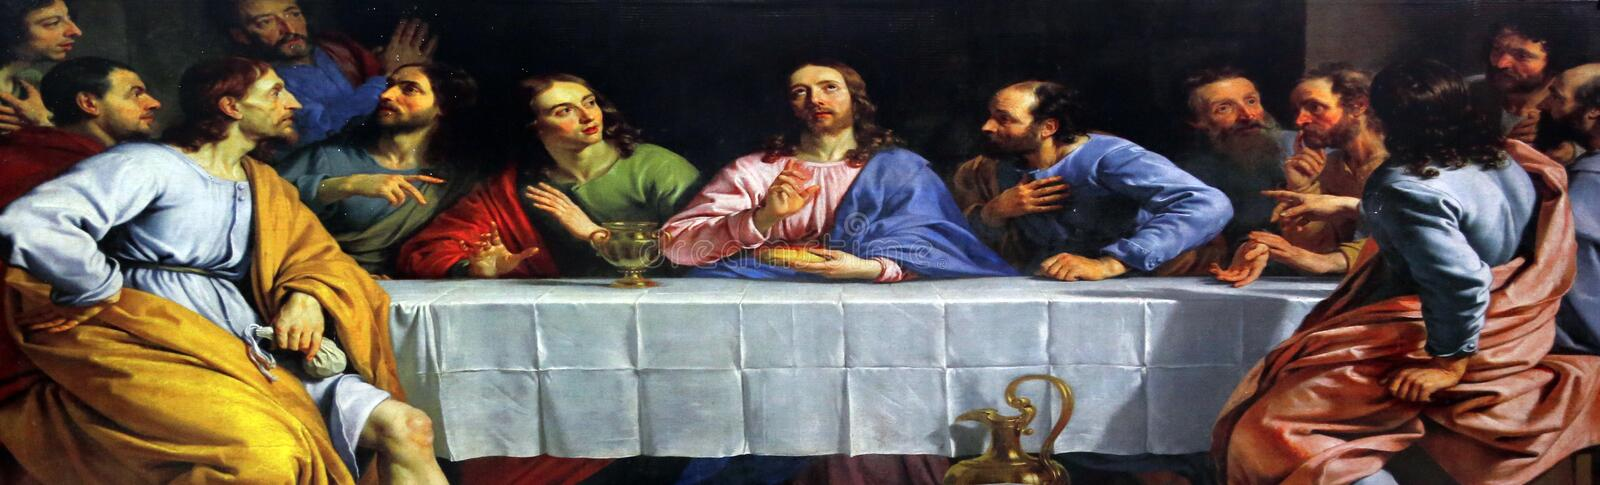 Last Supper royalty free stock photos